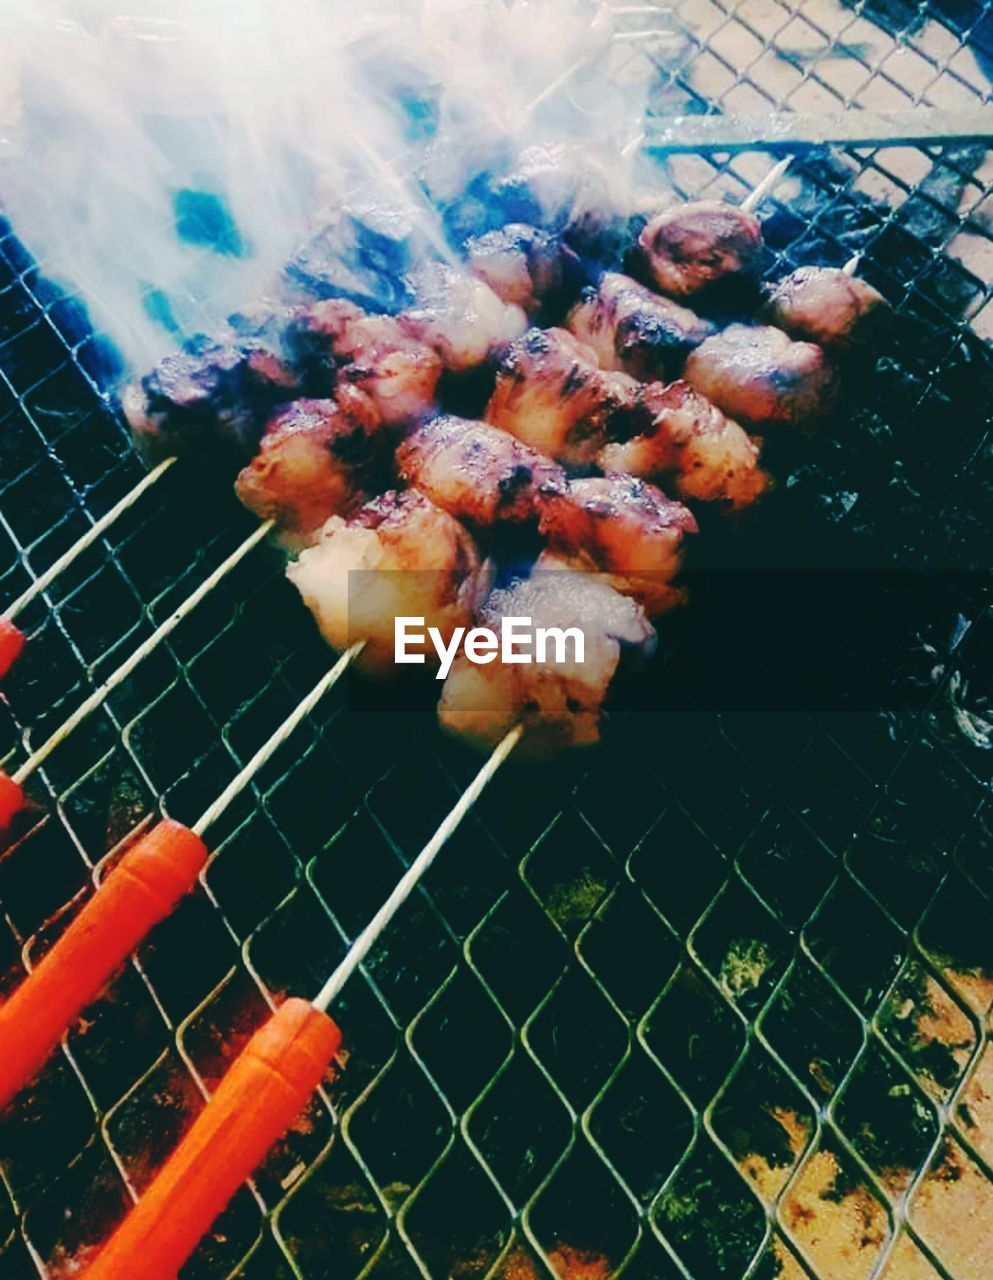 barbecue, grilled, barbecue grill, food, heat - temperature, meat, food and drink, no people, preparation, metal, close-up, grid, burning, metal grate, grate, freshness, fire, nature, smoke - physical structure, fire - natural phenomenon, outdoors, preparing food